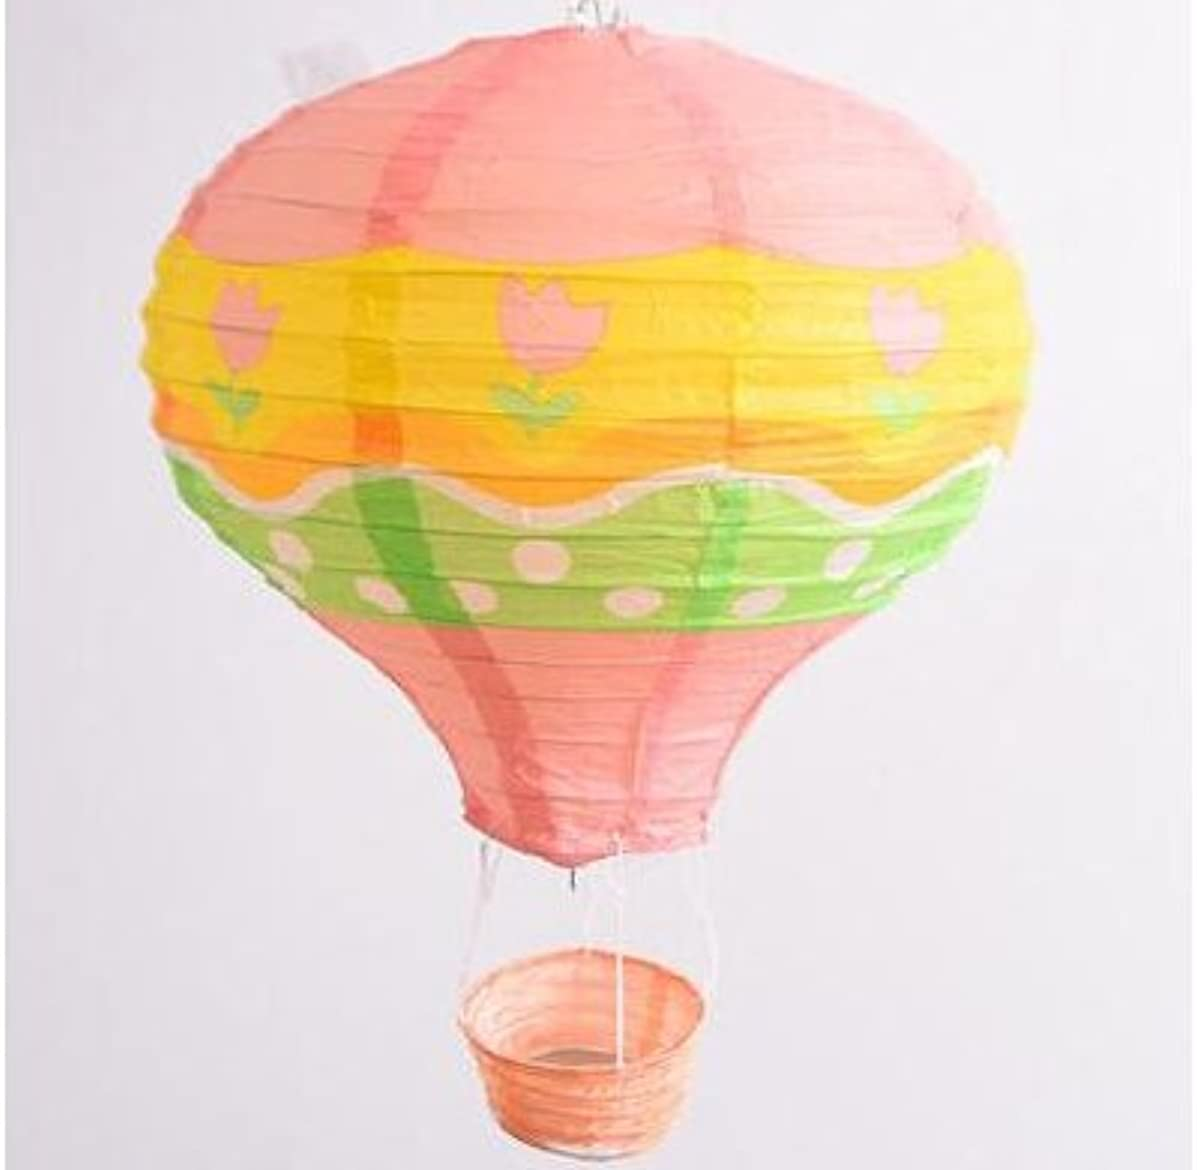 Joinwin 12 Inch Hanging Wedding Rainbow Hot Air Balloon Paper Lantern Party Decorations, Pack of 5 Pieces (Flower)